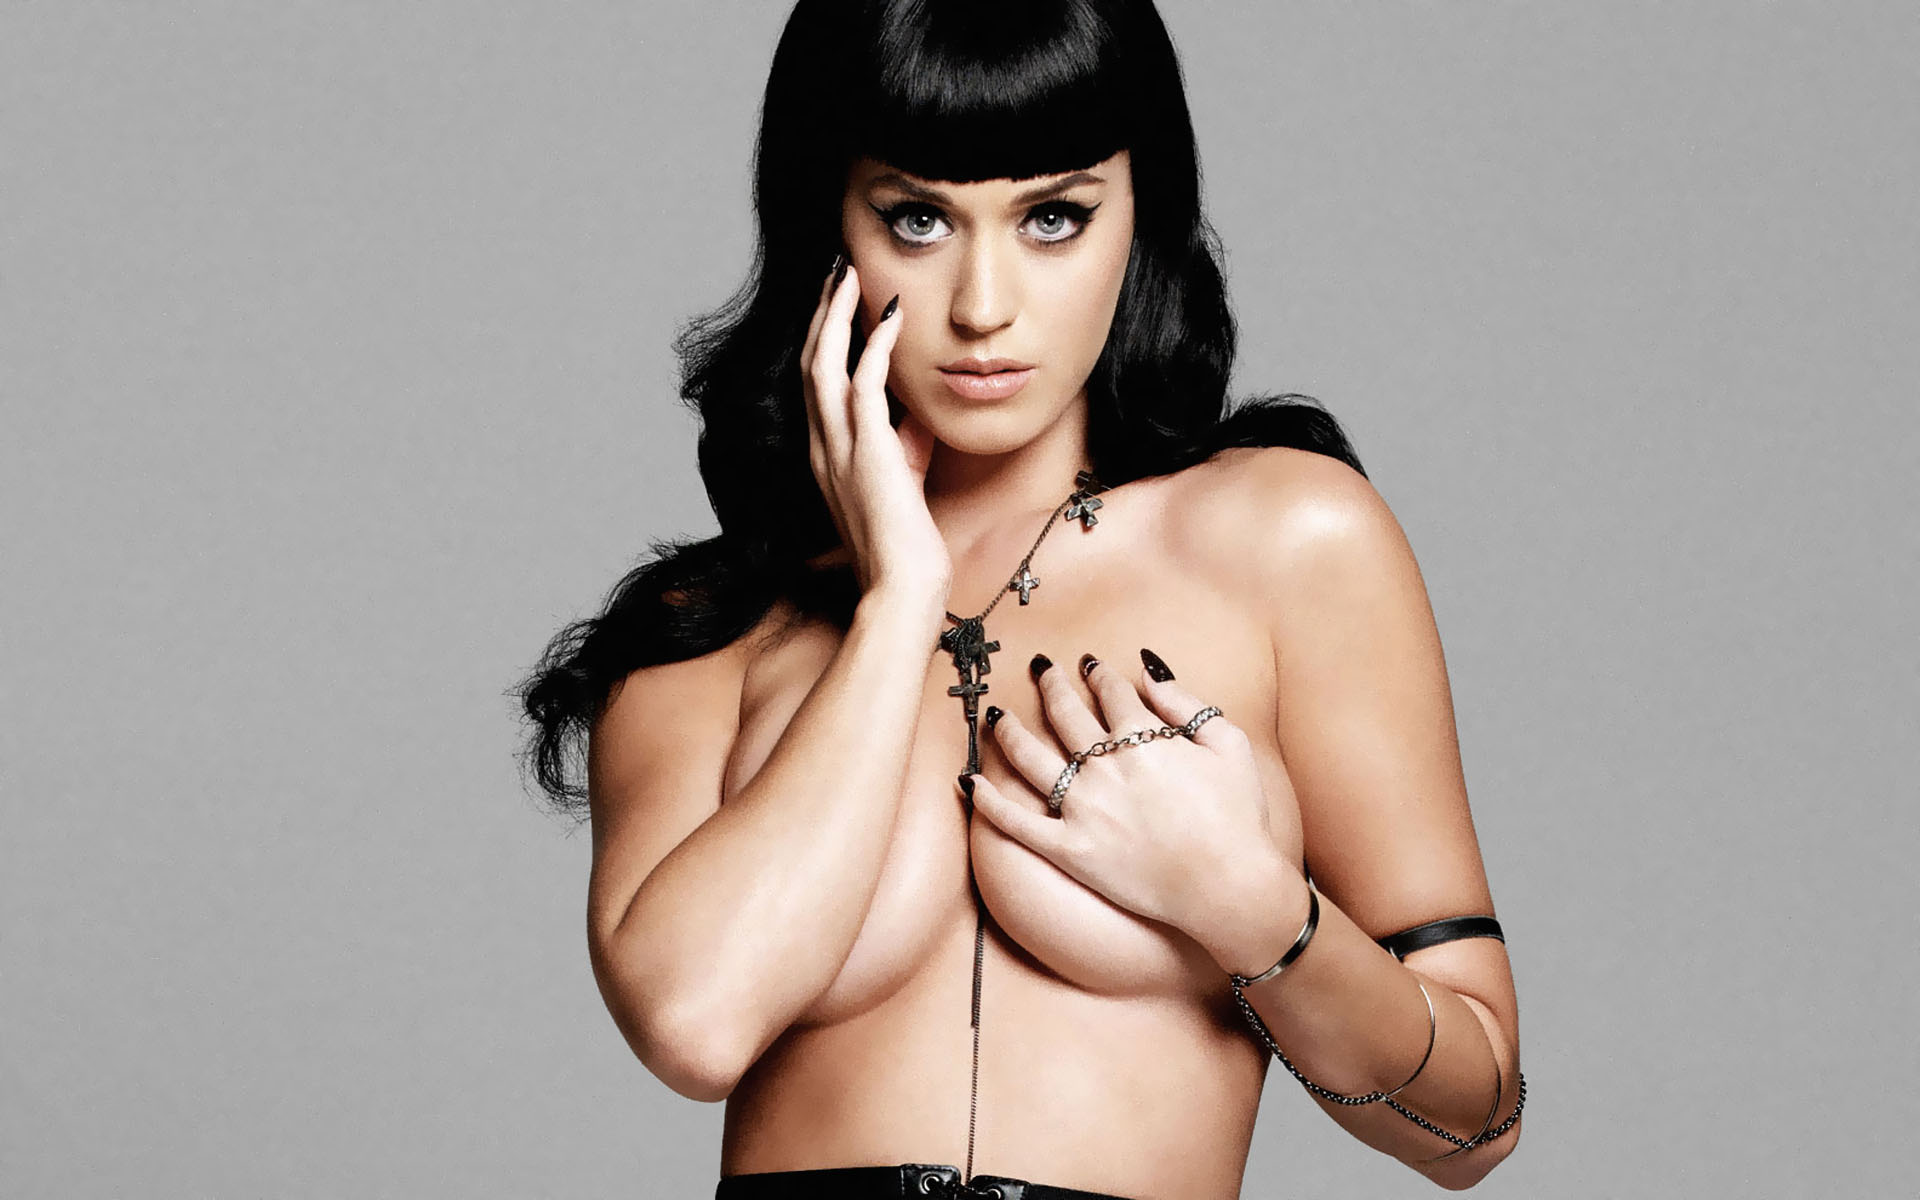 Topless Katy Perry her breasts